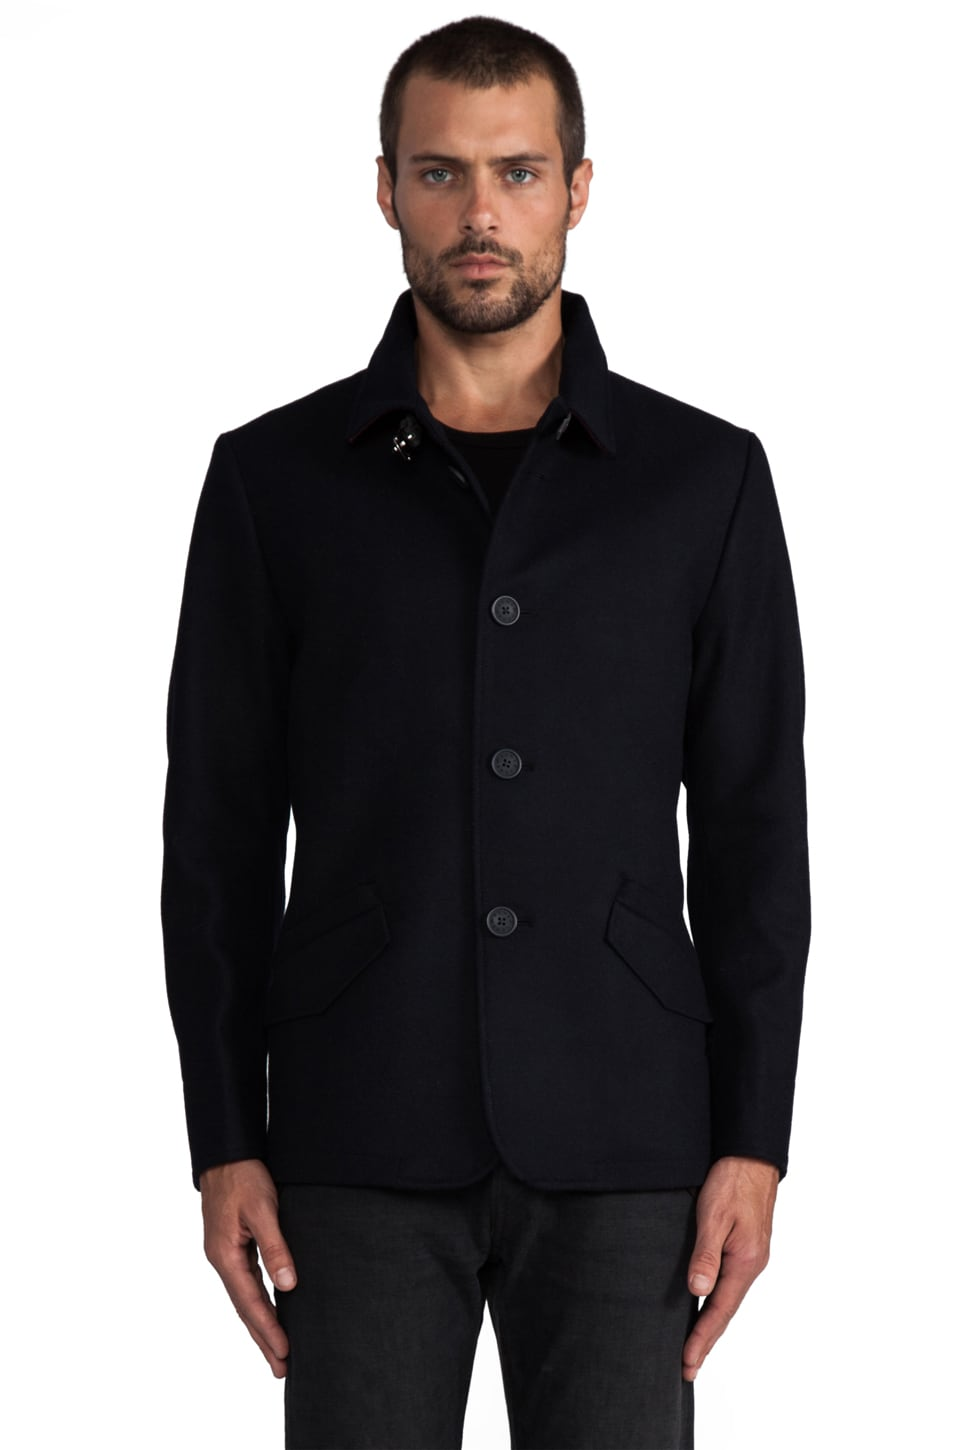 Howe Imposter Costume Jacket in Night Sky Navy